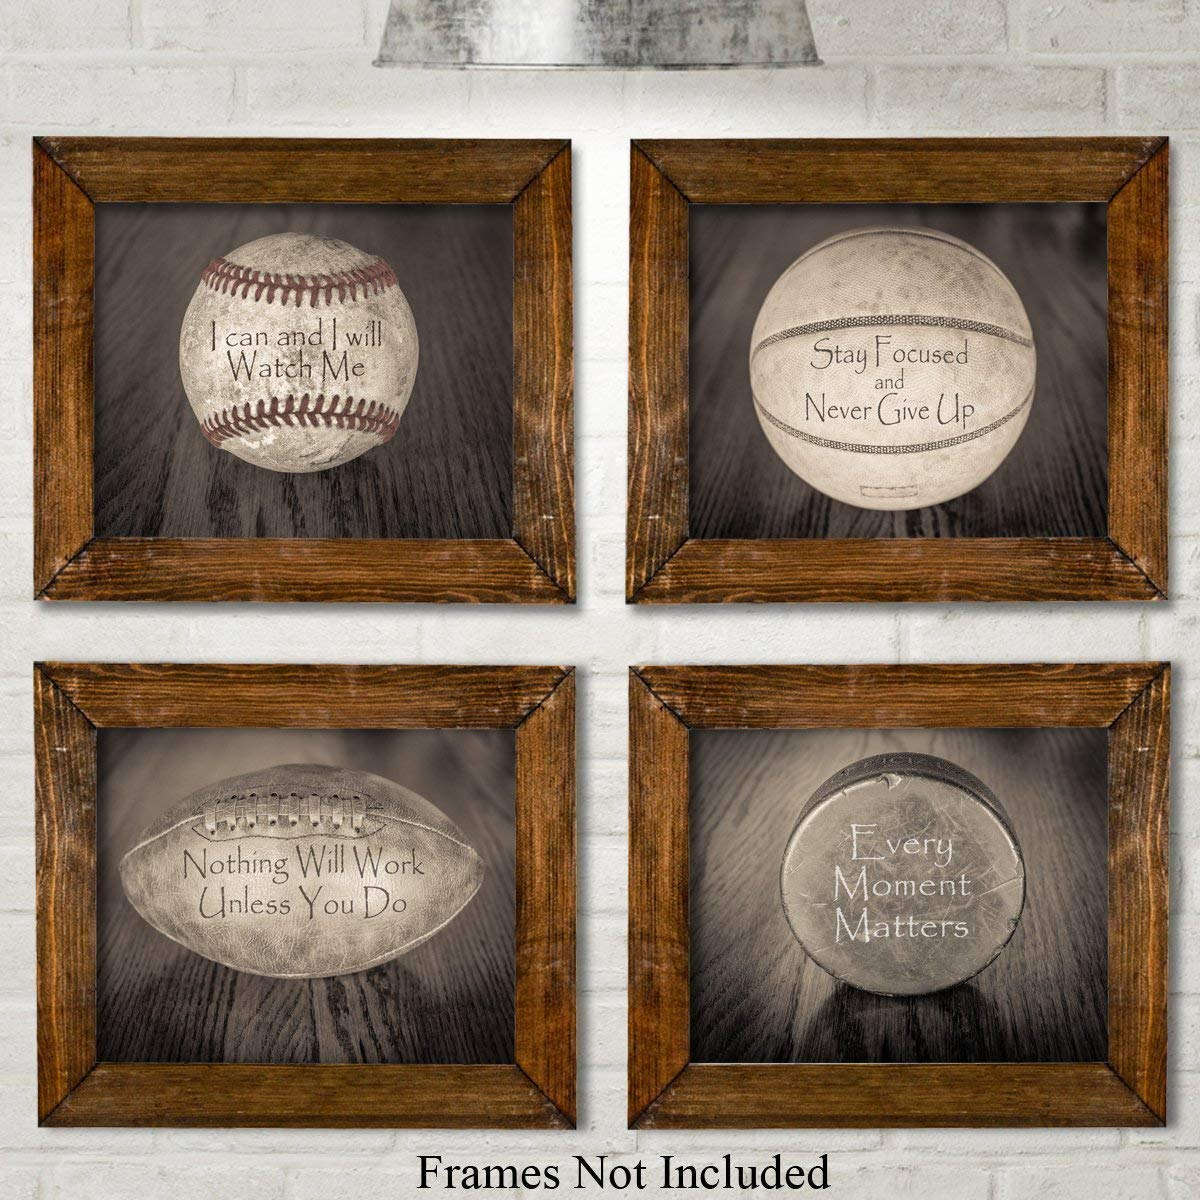 Inspirational Sports Quotes Unframed 8x10 Makes a Great Gift Under $20 for Boys Room Decor Set of Four Photos